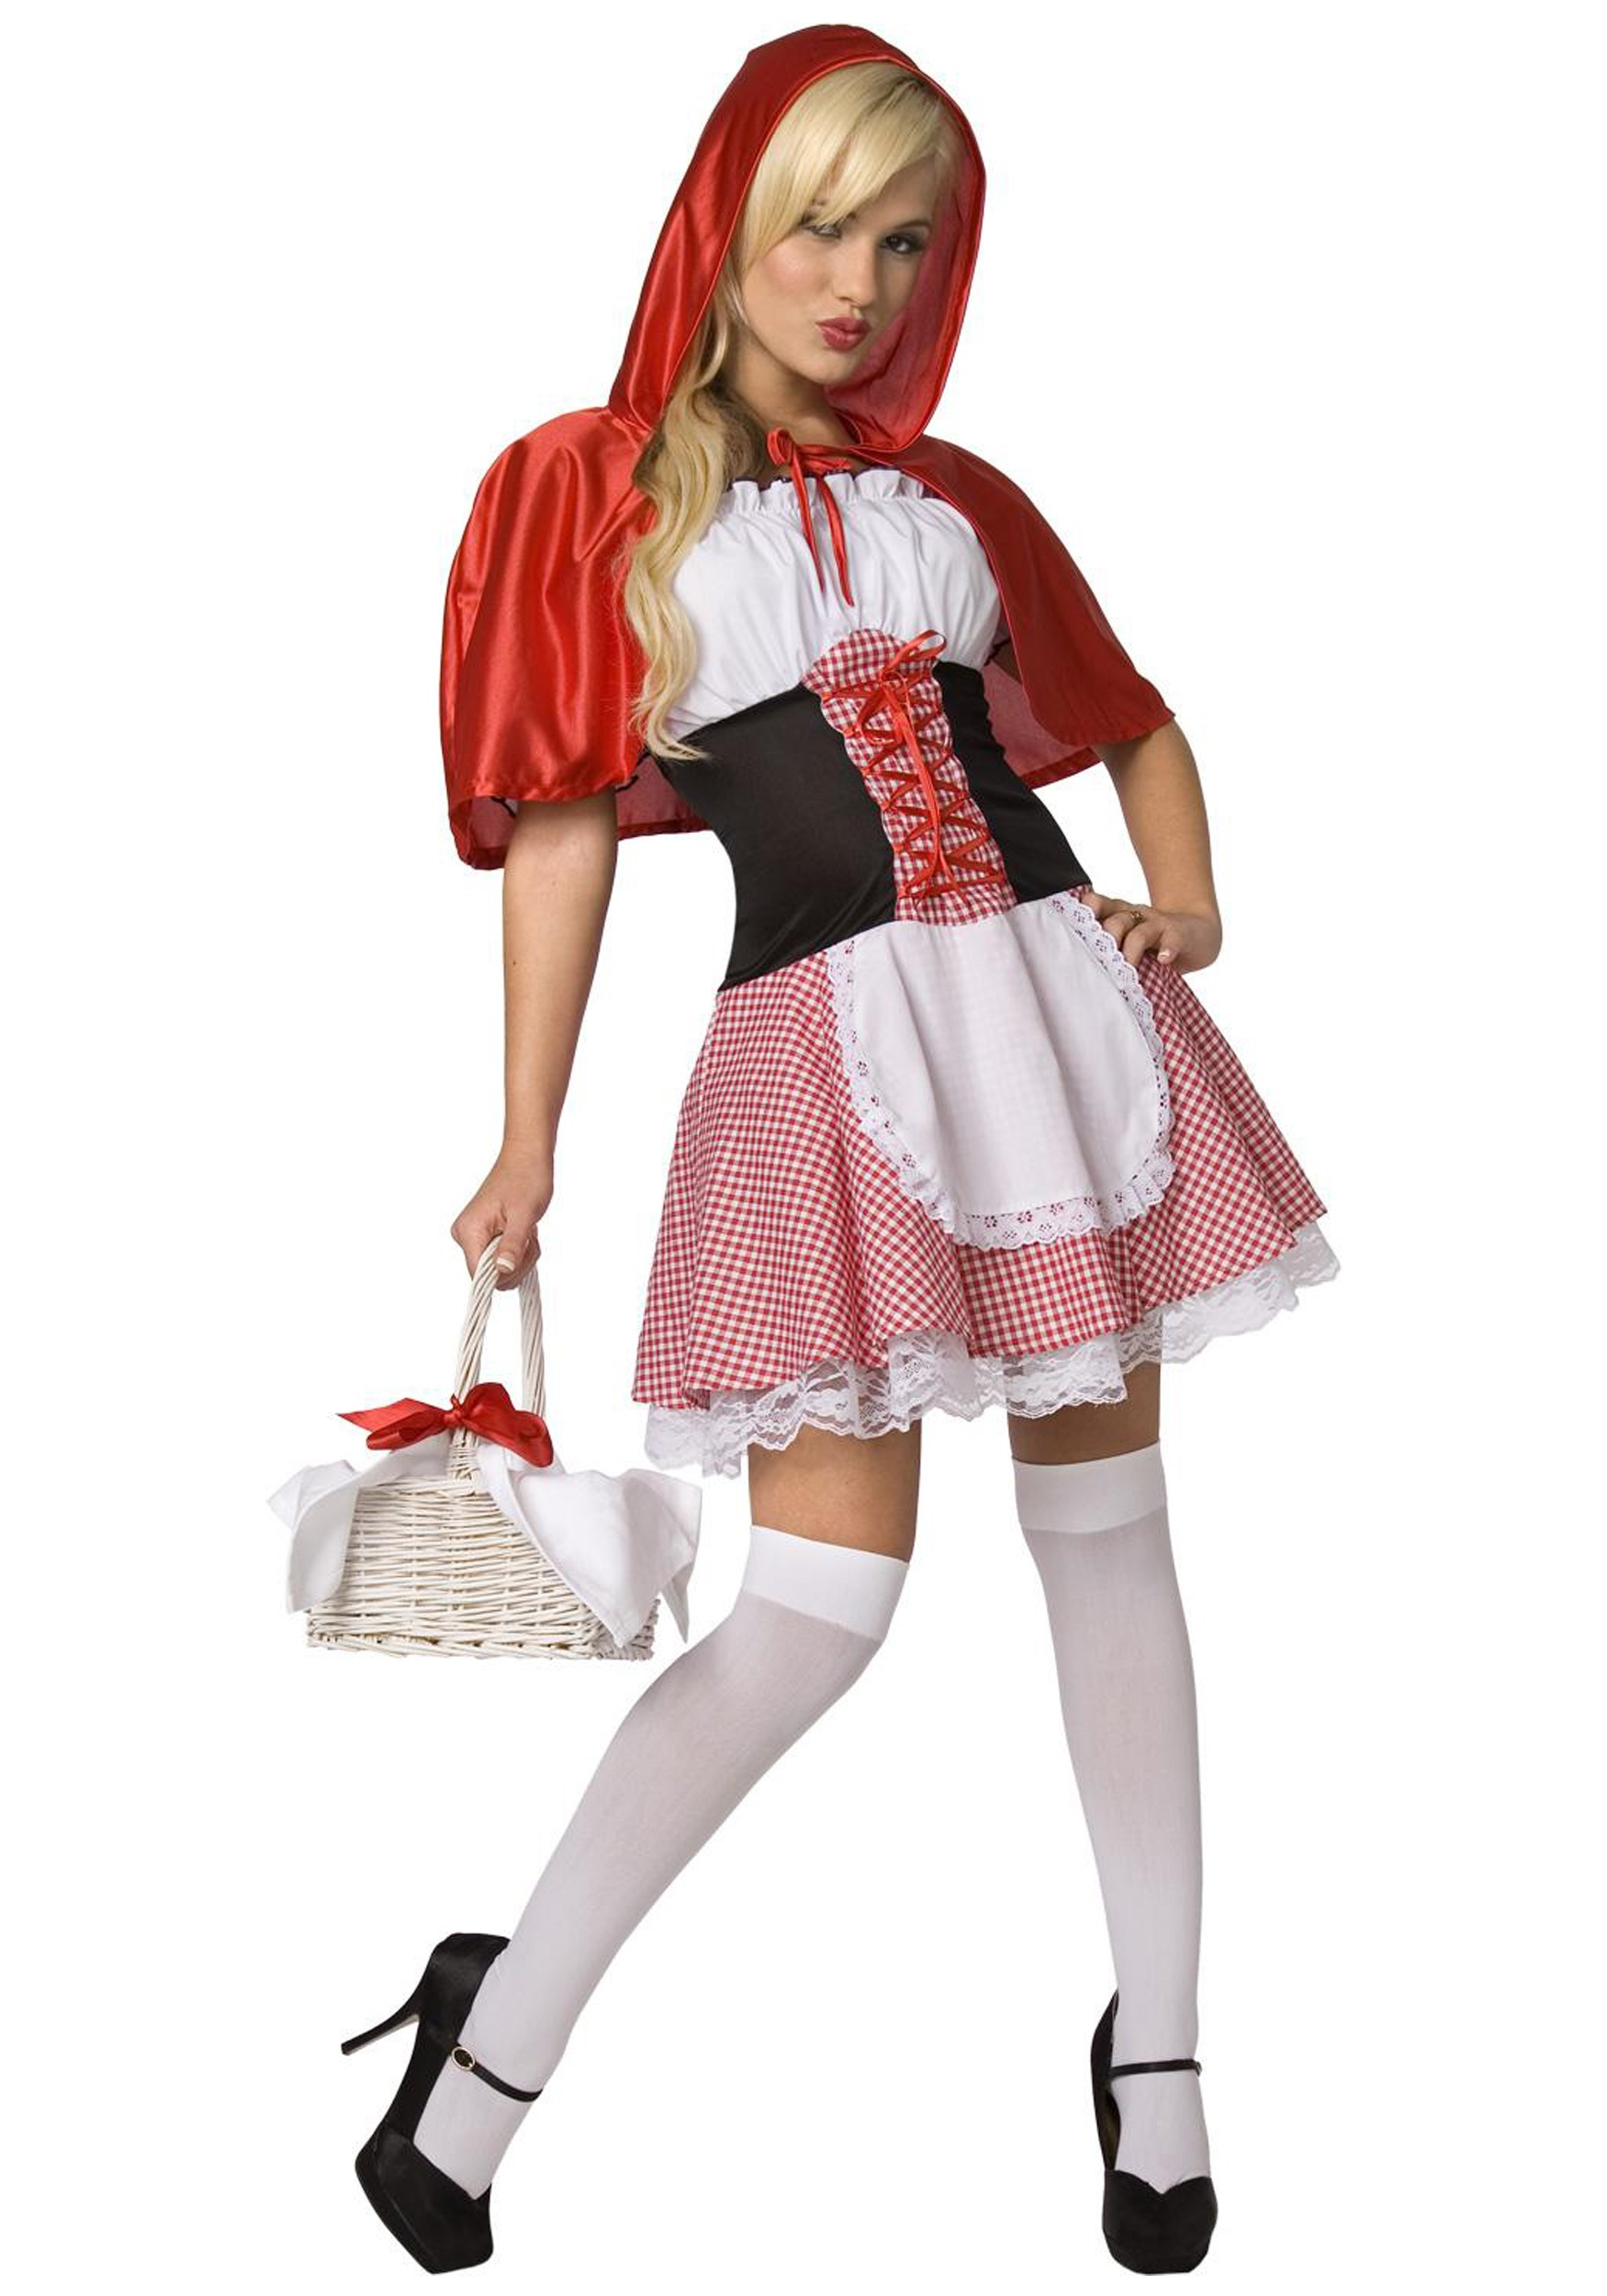 Sexy Red Riding Hood Costume for Women   Storybook Character Costume